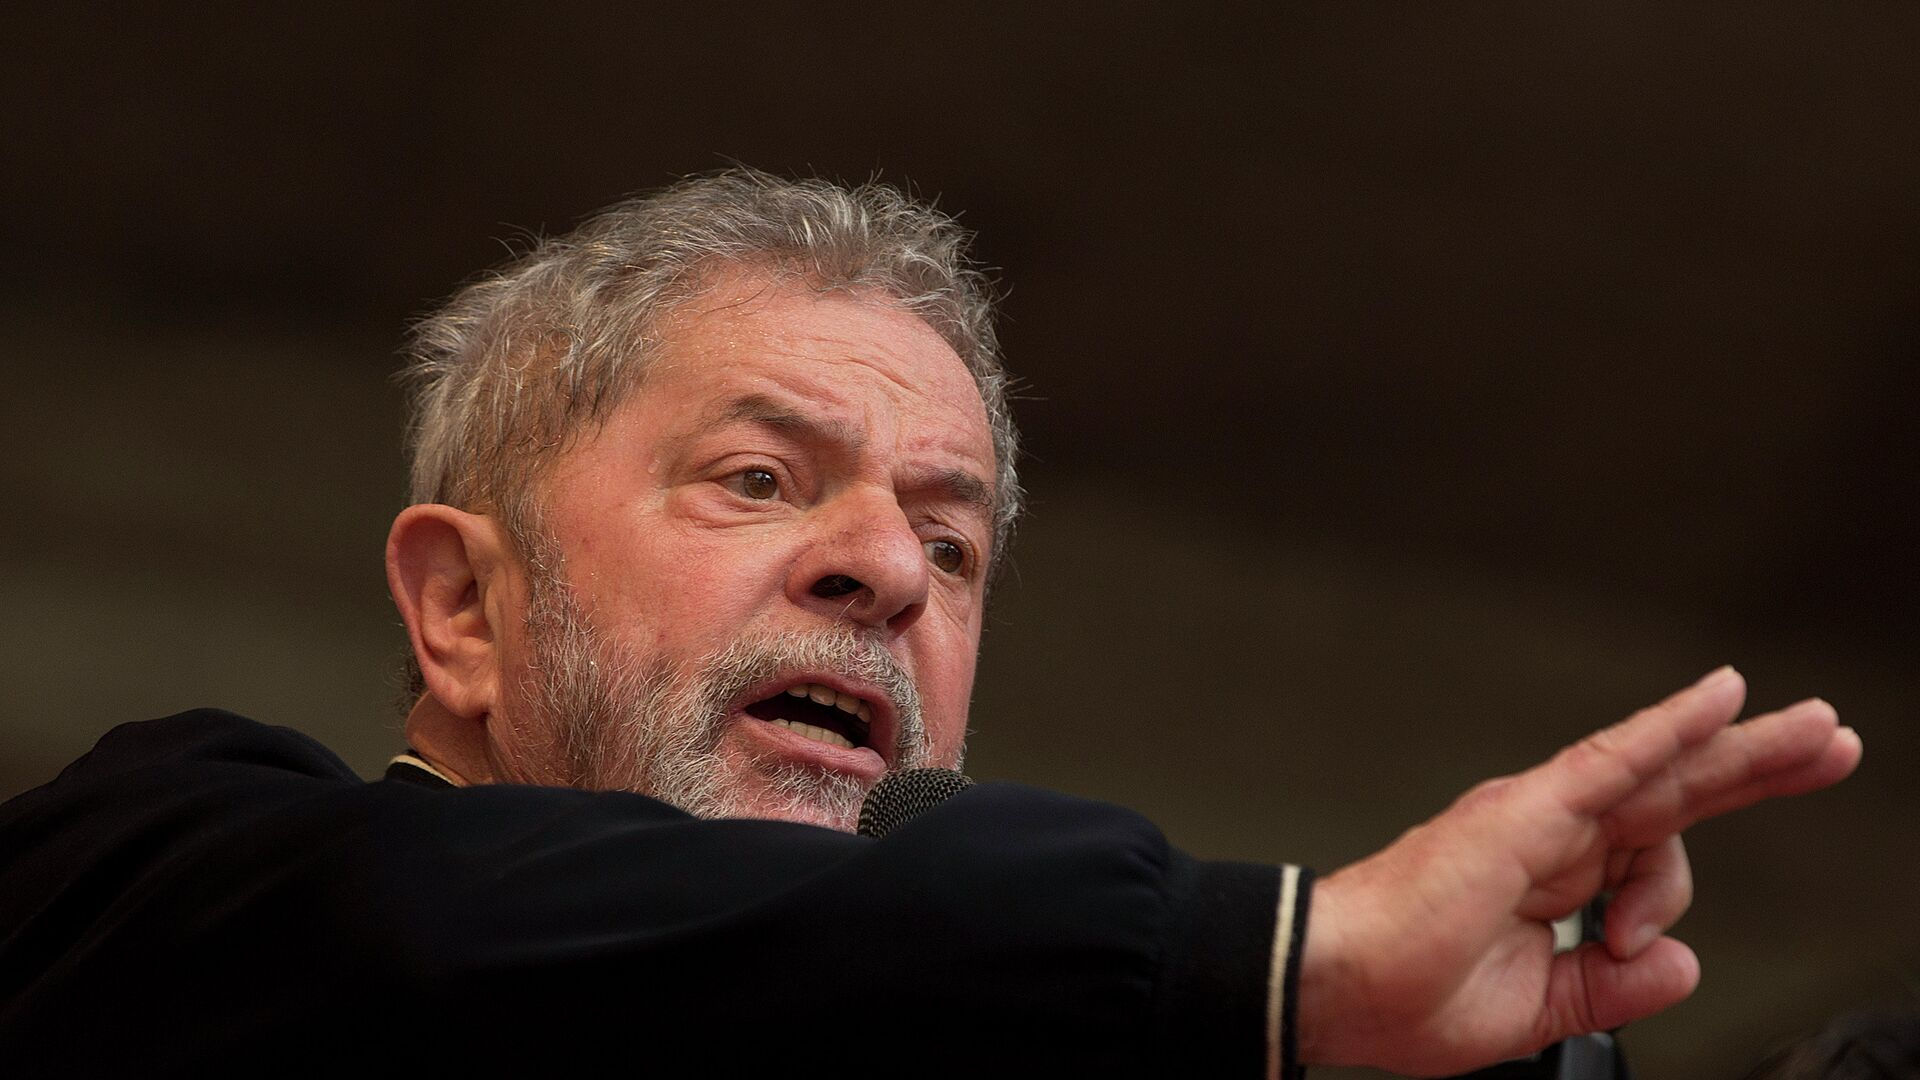 Brazil's former President Luiz Inacio Lula da Silva delivers a speech during a May Day rally in Sao Paulo, Brazil, Friday, May 1, 2015. - Sputnik Mundo, 1920, 09.03.2021